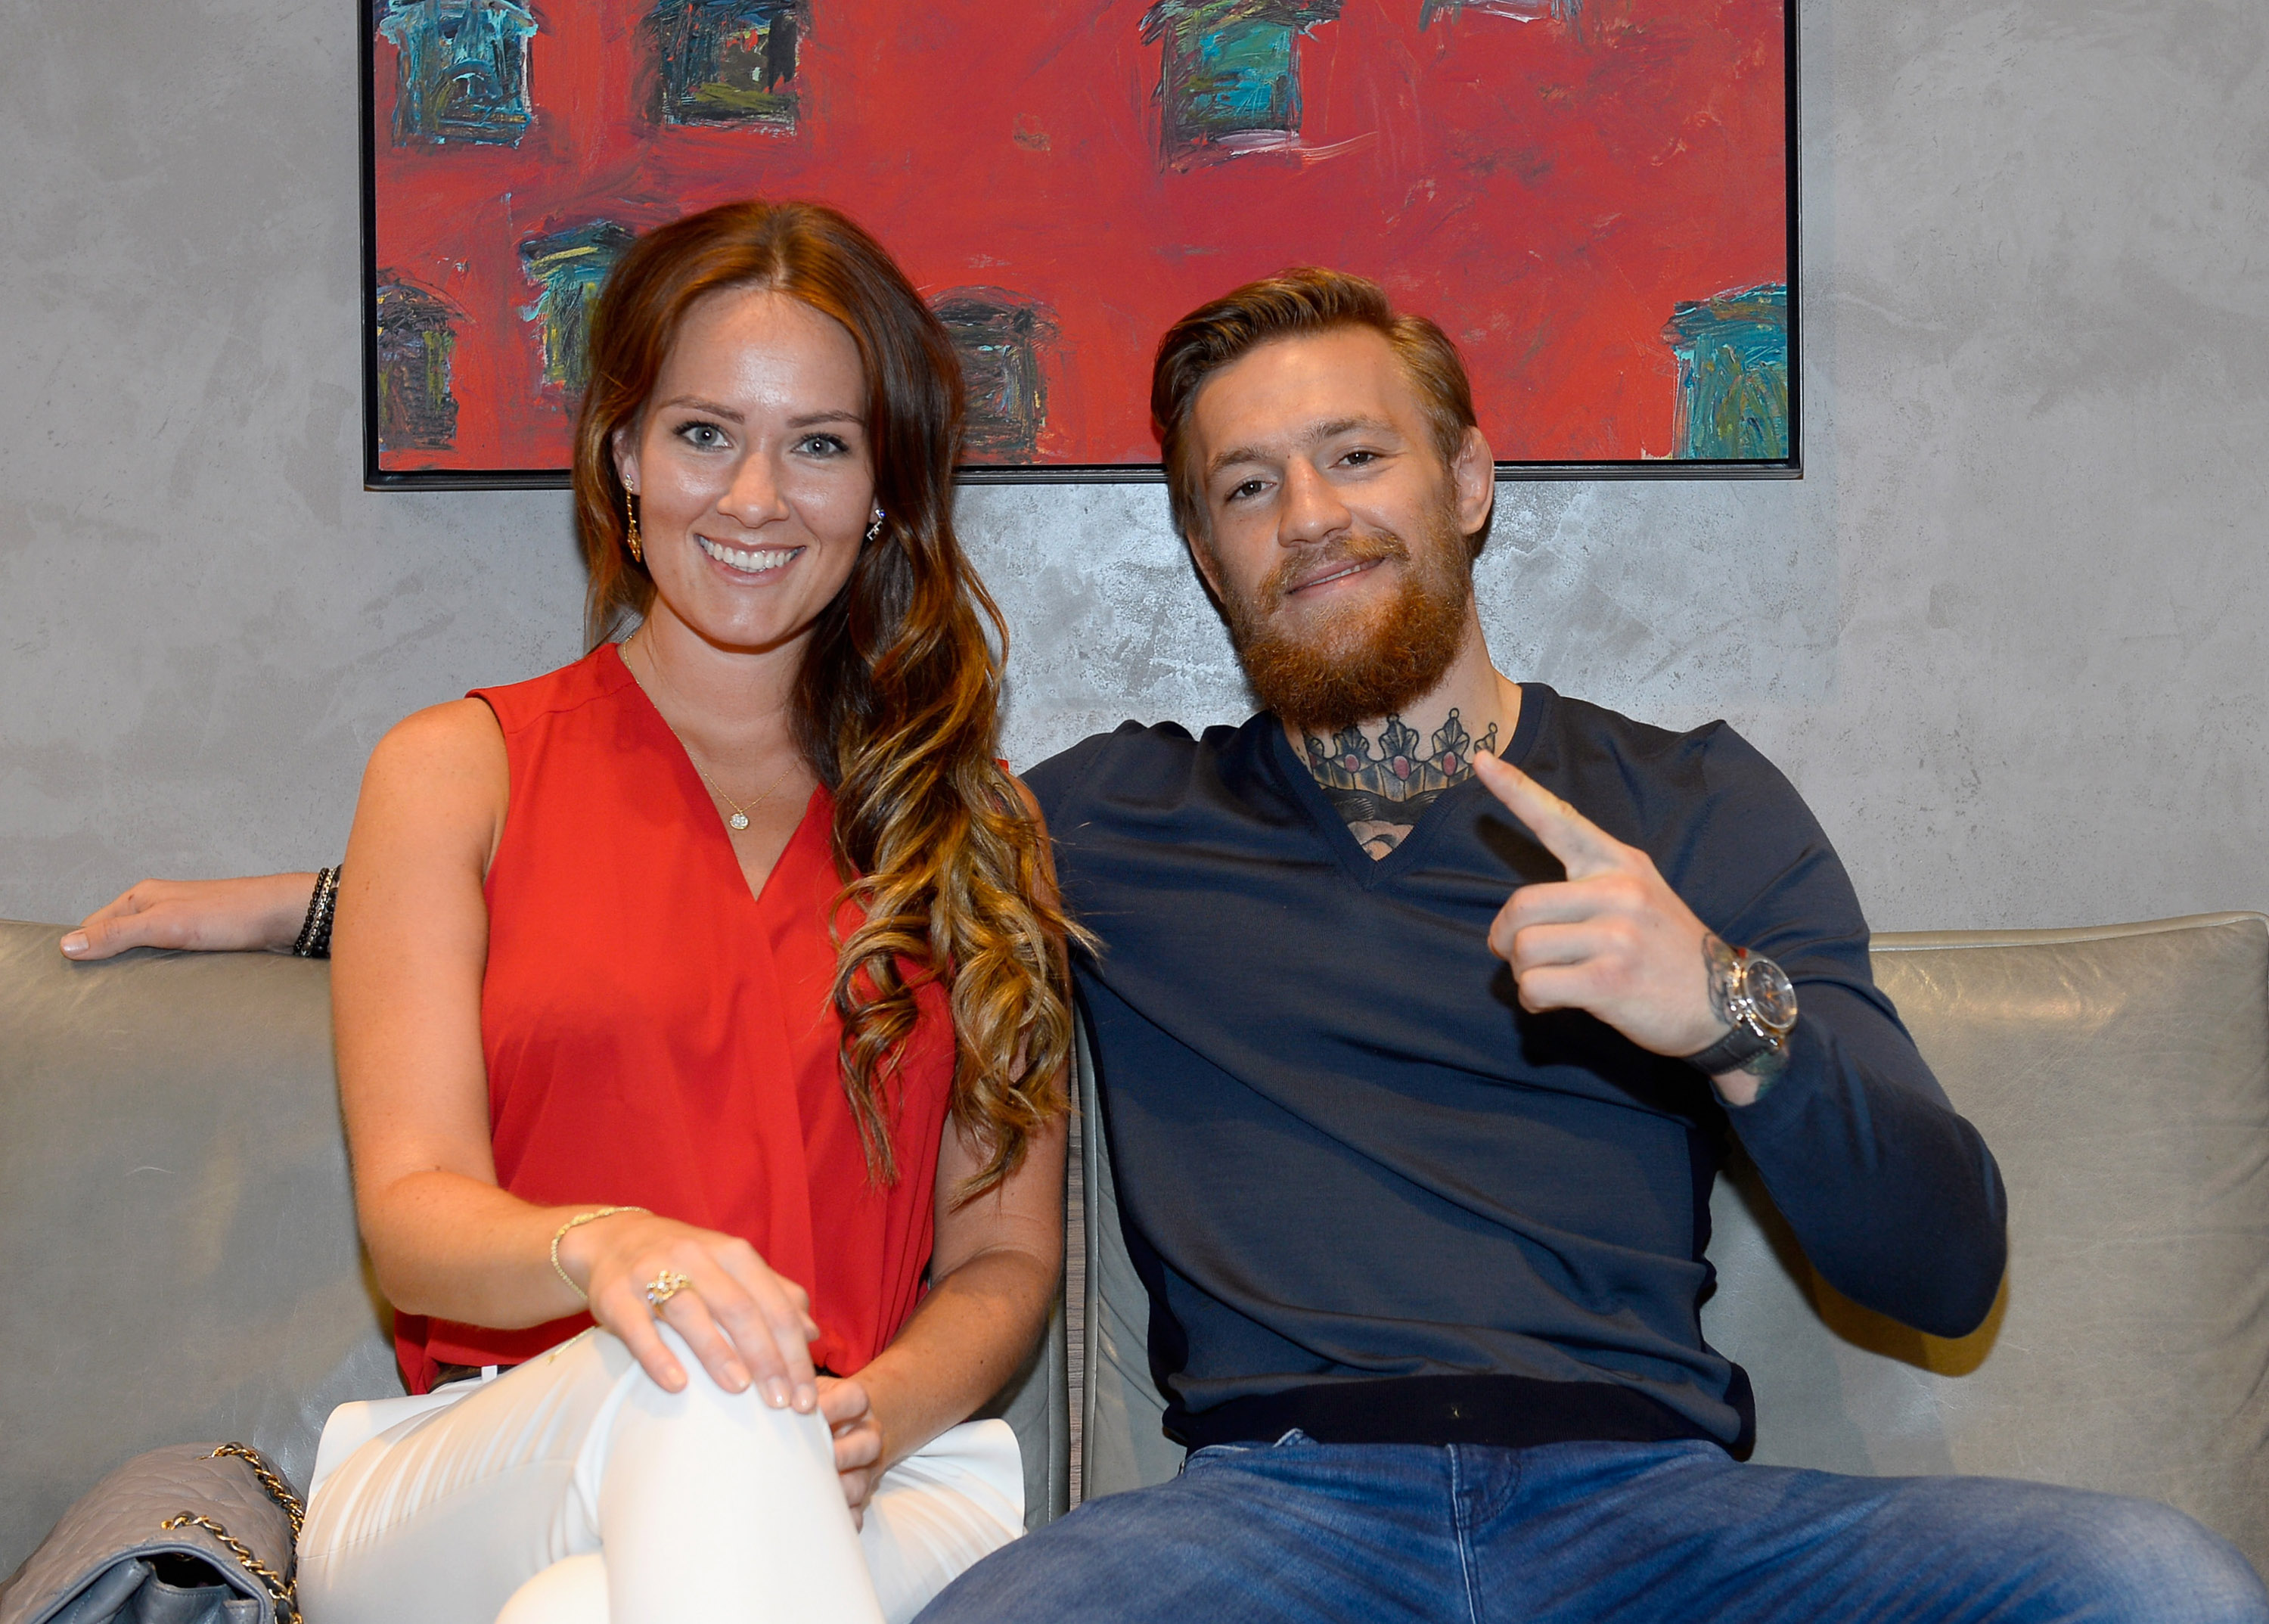 LAS VEGAS, NV - JULY 06: Dee Devlin (L) and Host/VIP Conor McGregor attend the David Yurman with Conor McGregor Hosts an In-Store Event on July 6, 2015 in Las Vegas, Nevada. (Photo by Bryan Steffy/Getty Images for David Yurman)